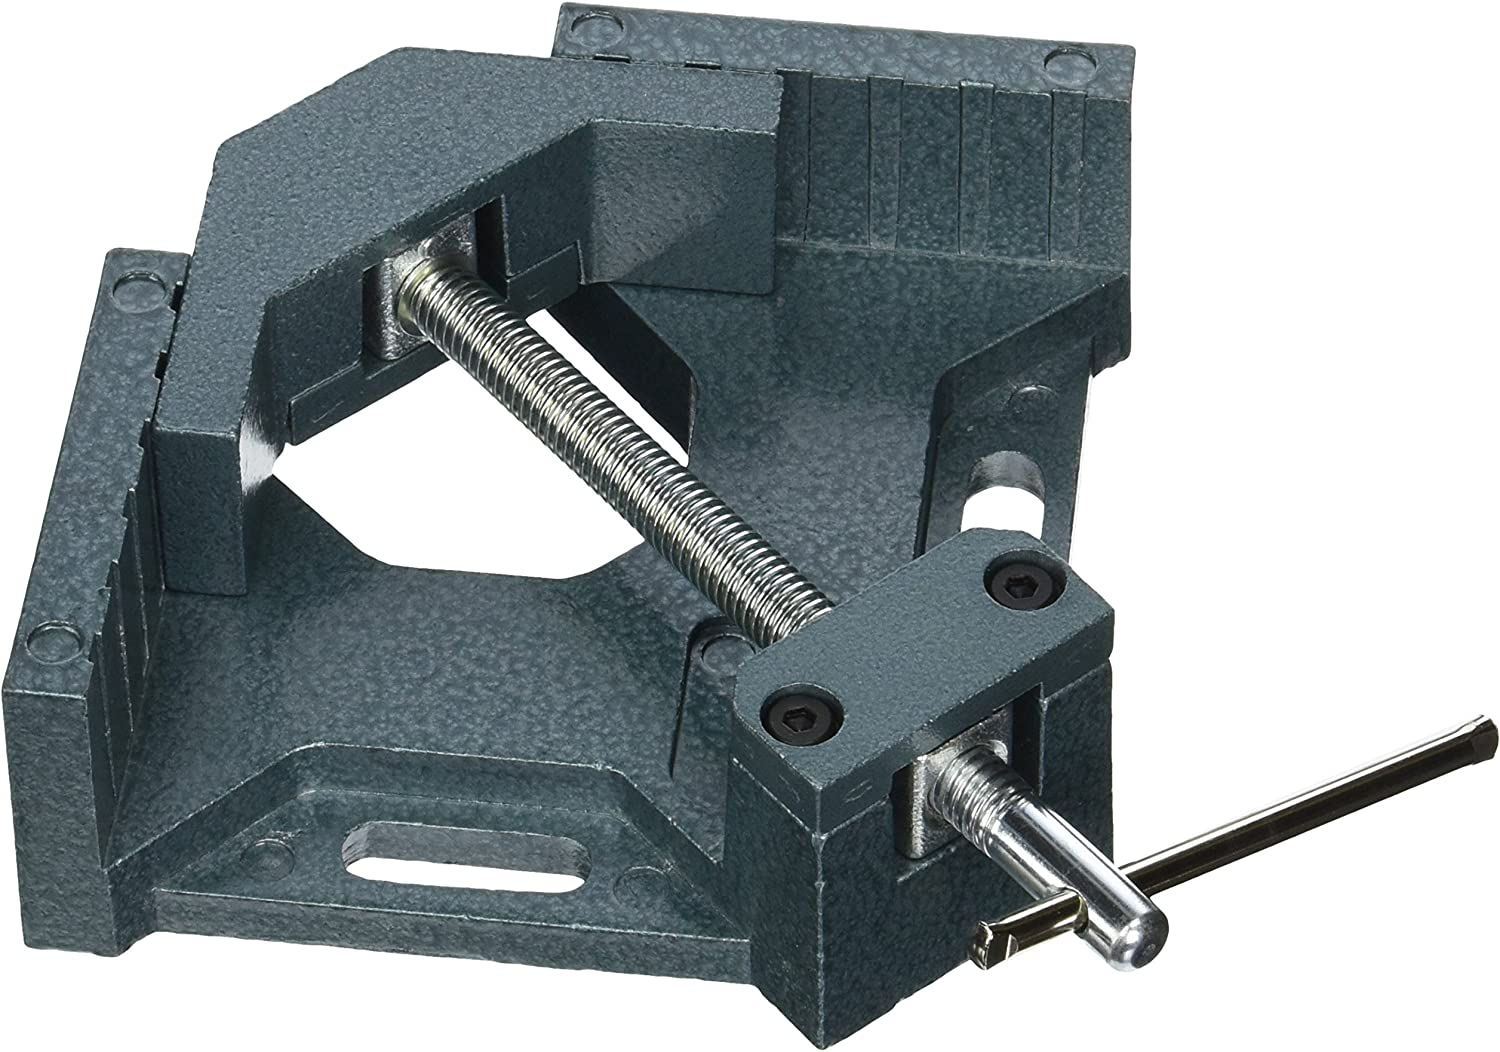 Wilton 44324 Ac-324, 90 Degree Angle Clamp, 4-Inch Throat, 2-3/4-Inch Miter Capacity, 1-3/8-Inch Jaw Height, 2-1/4-Inch Jaw Length